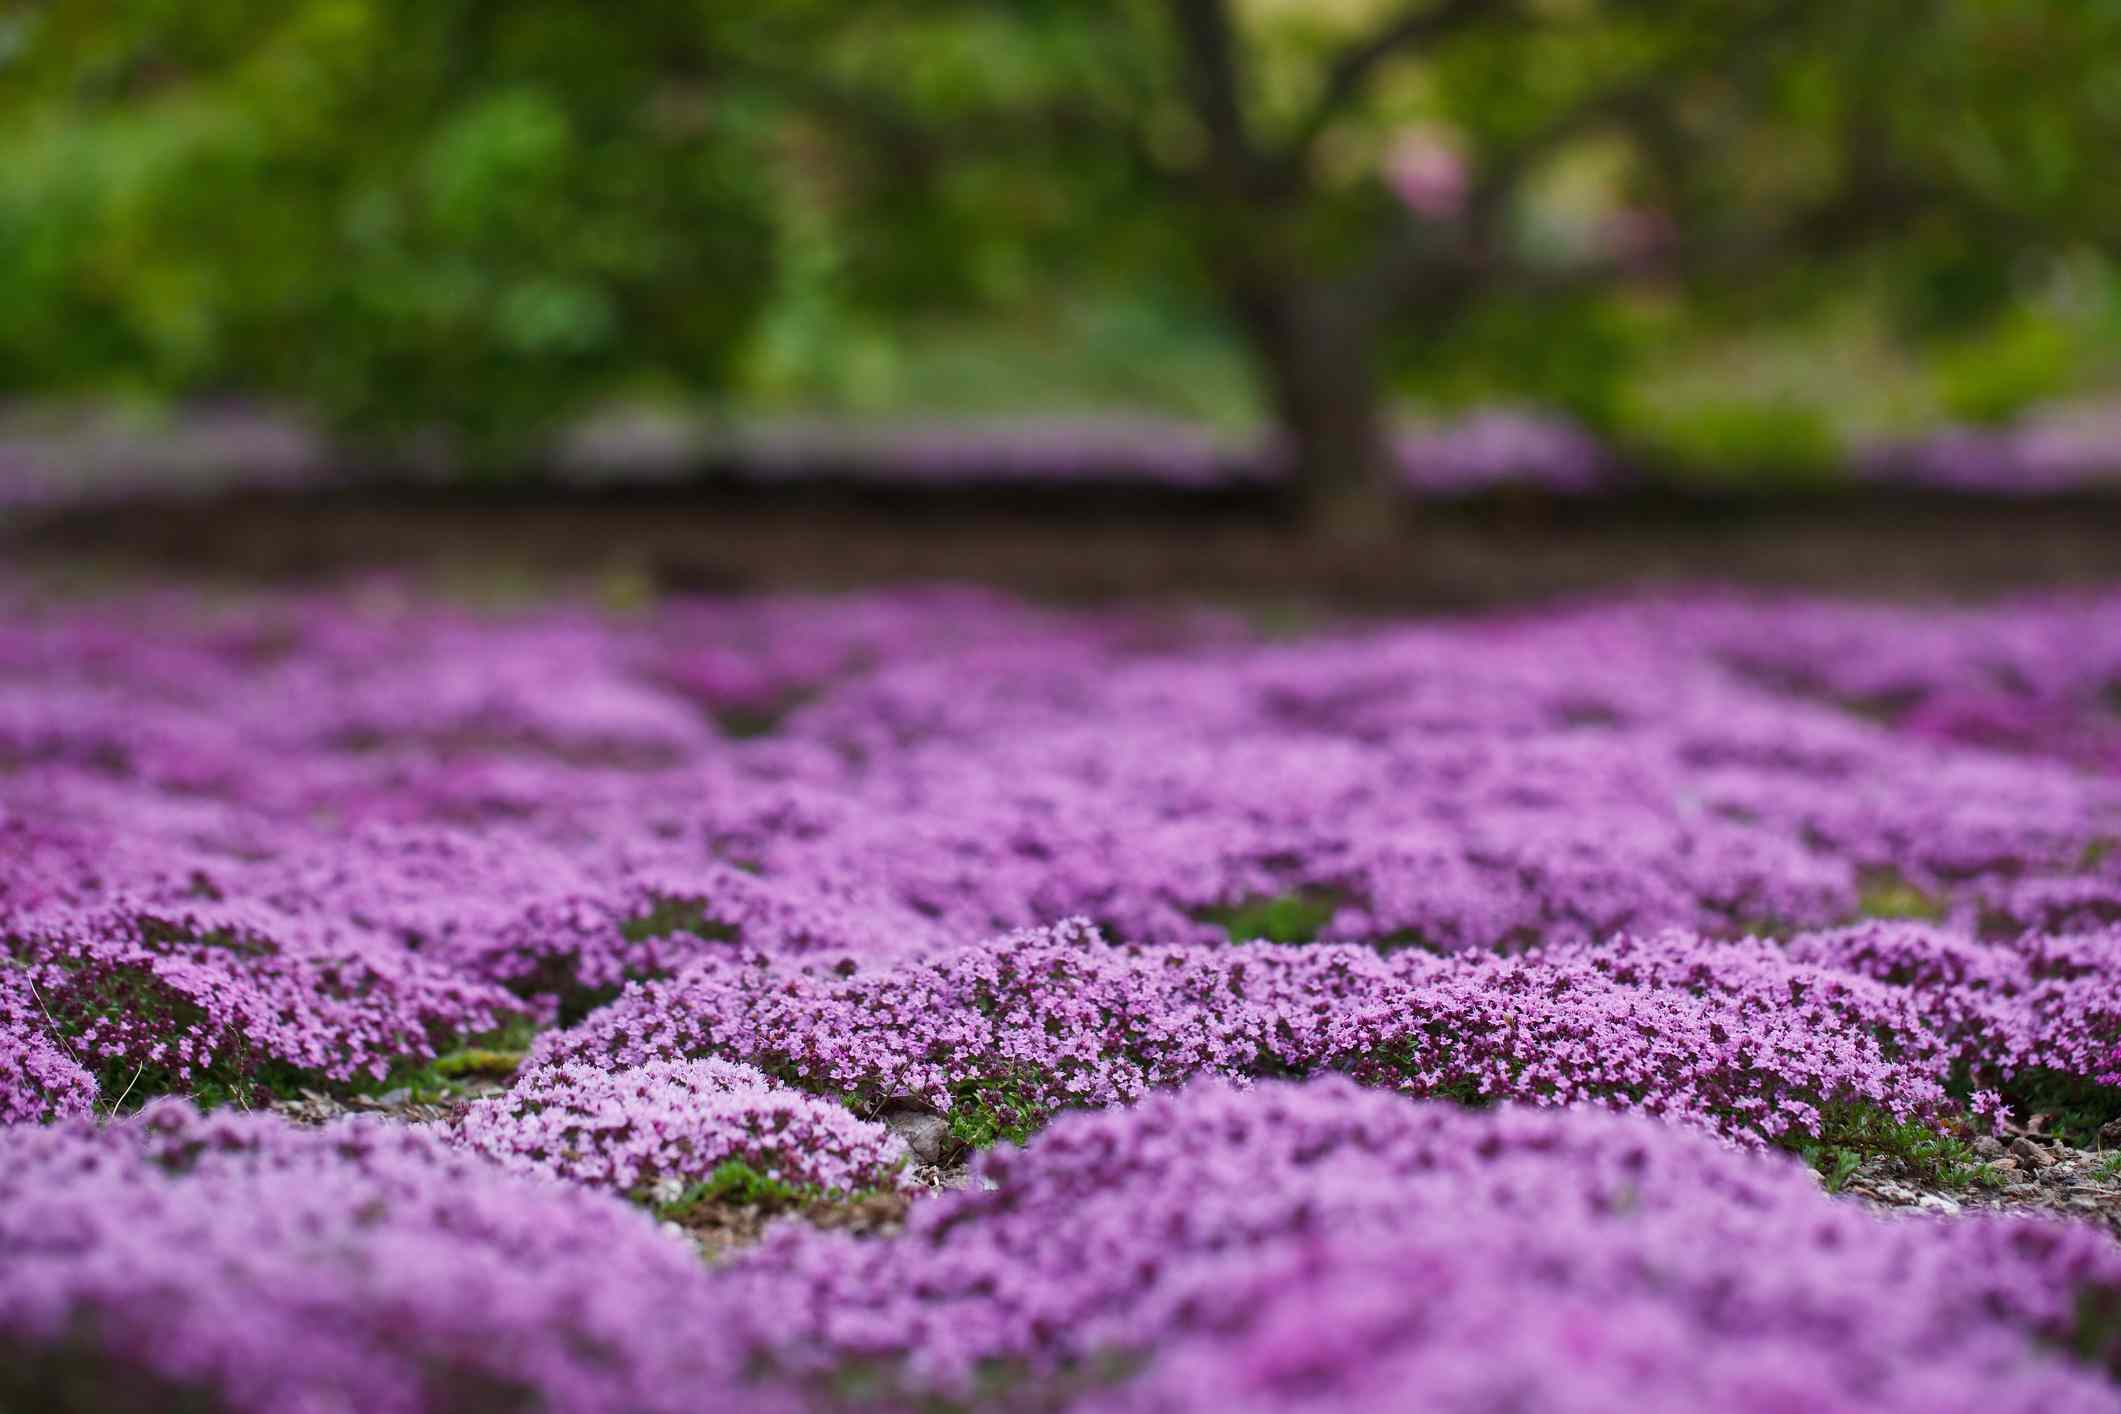 A field of purple creeping thyme with a tree in the background.